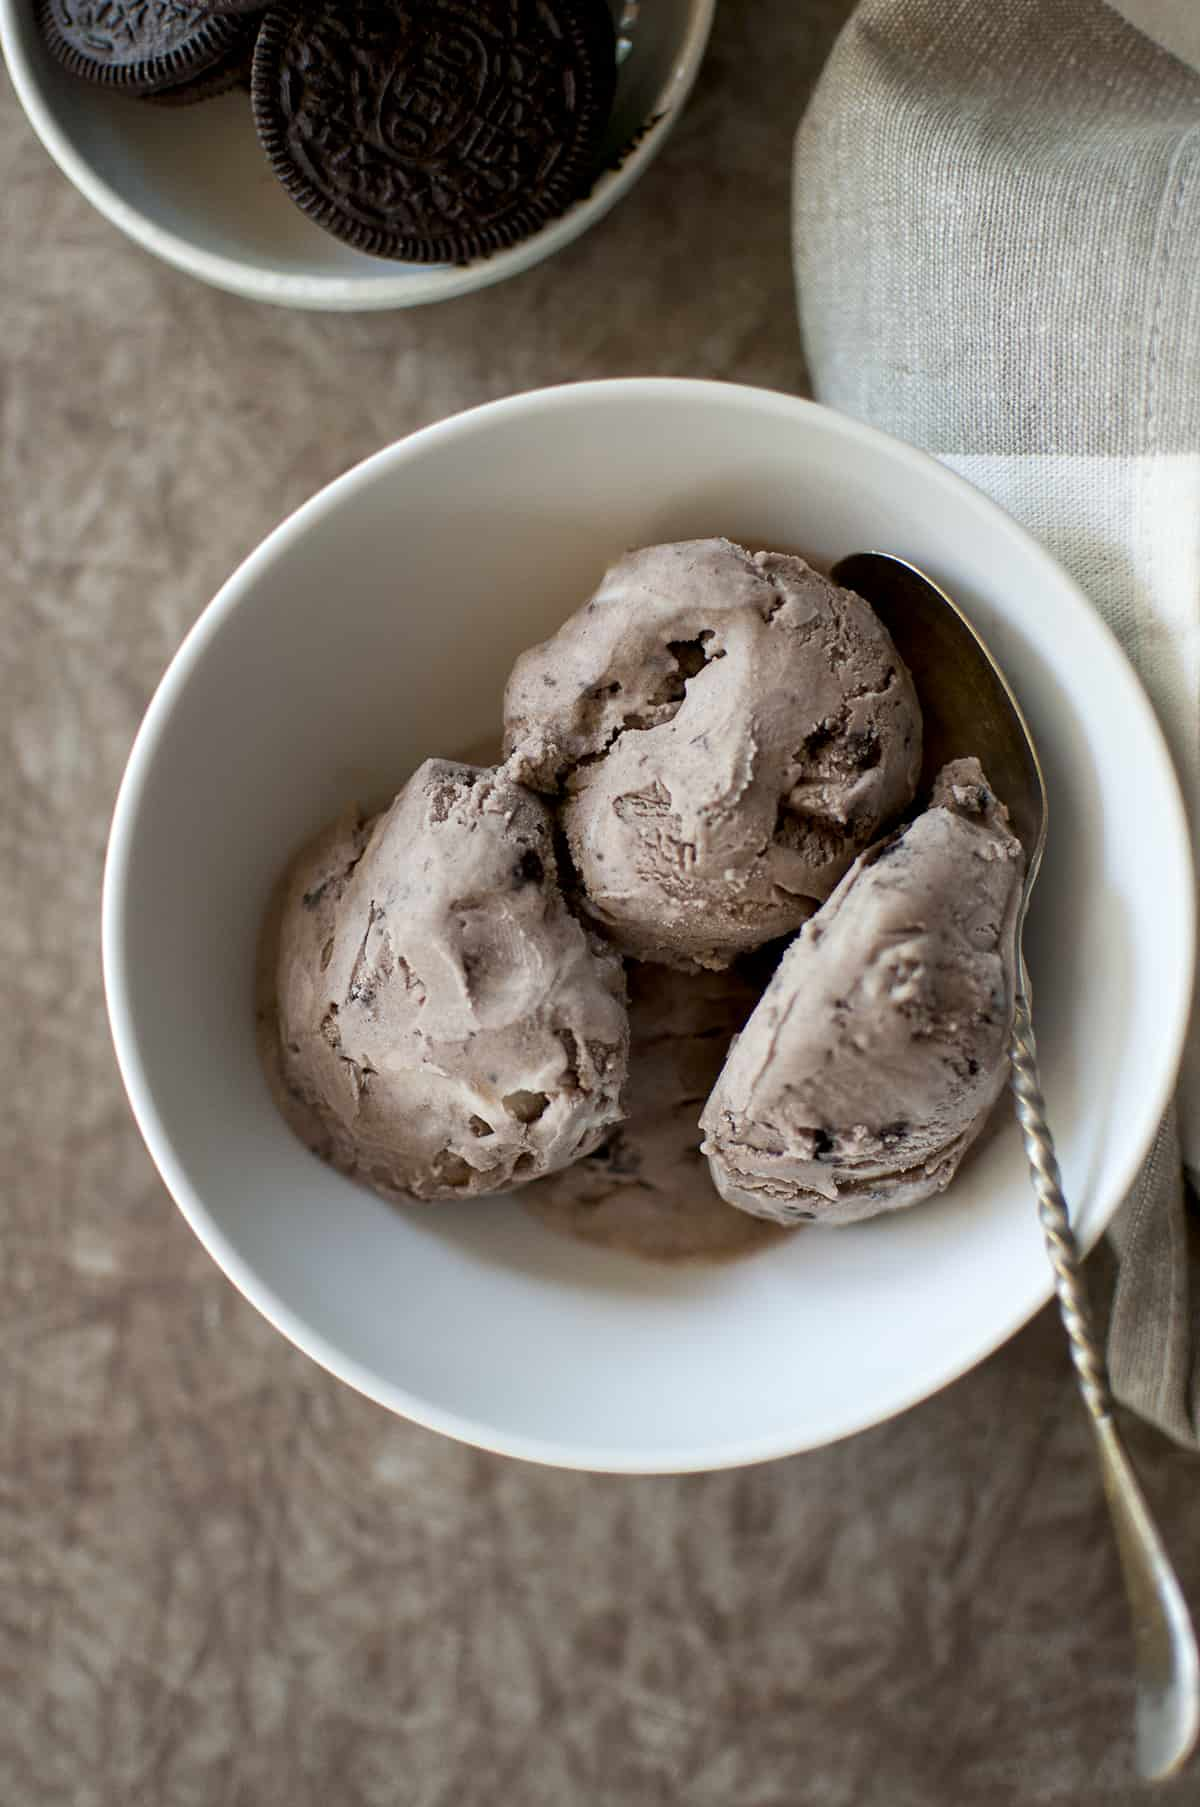 White bowl with 3 scoops of cookies and cream ice cream